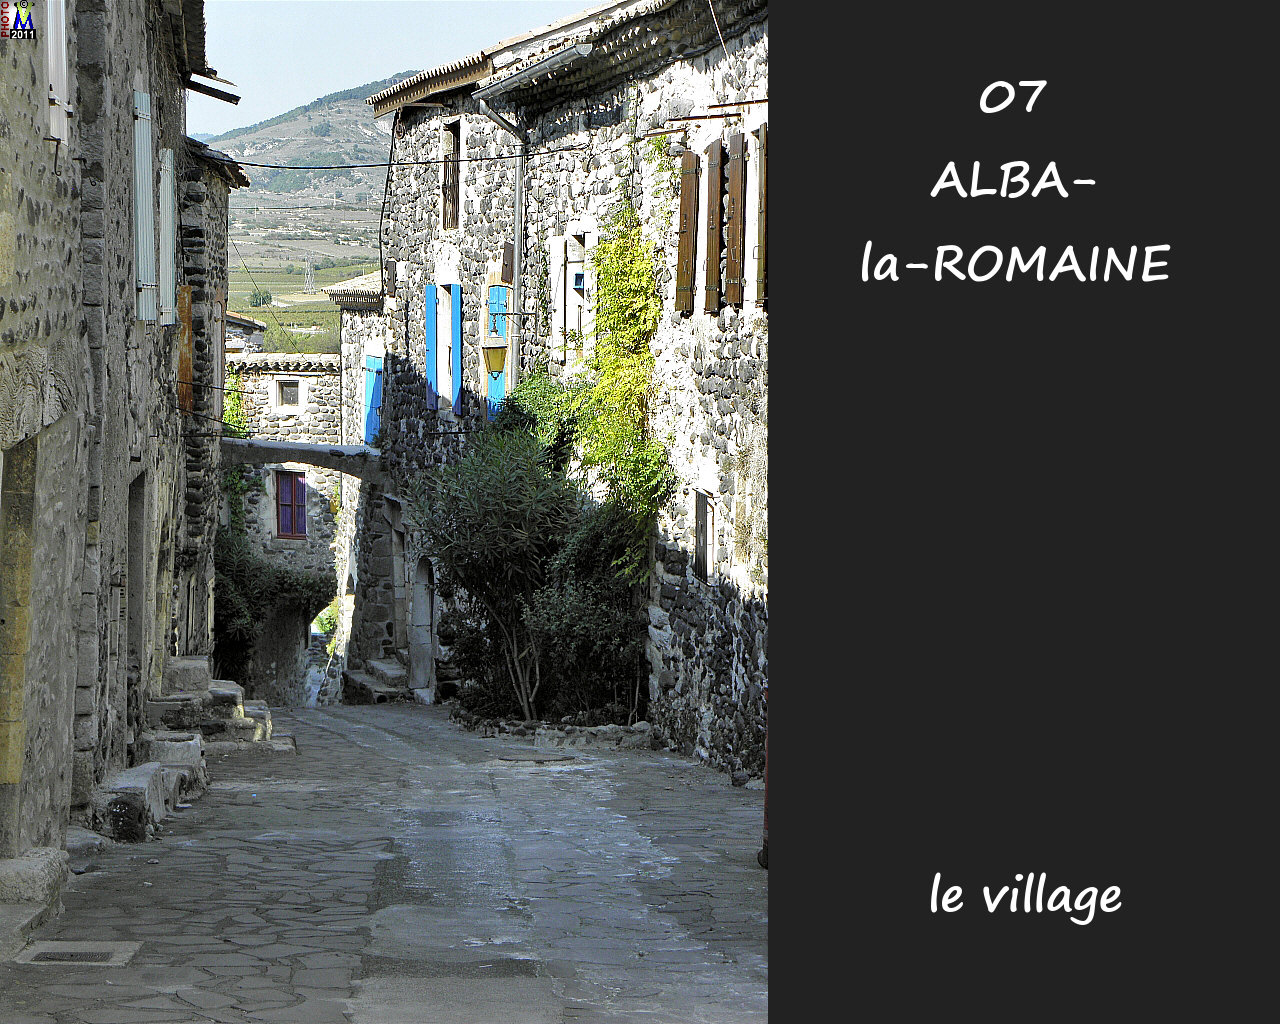 07ALBA-ROMAINE_village_112.jpg